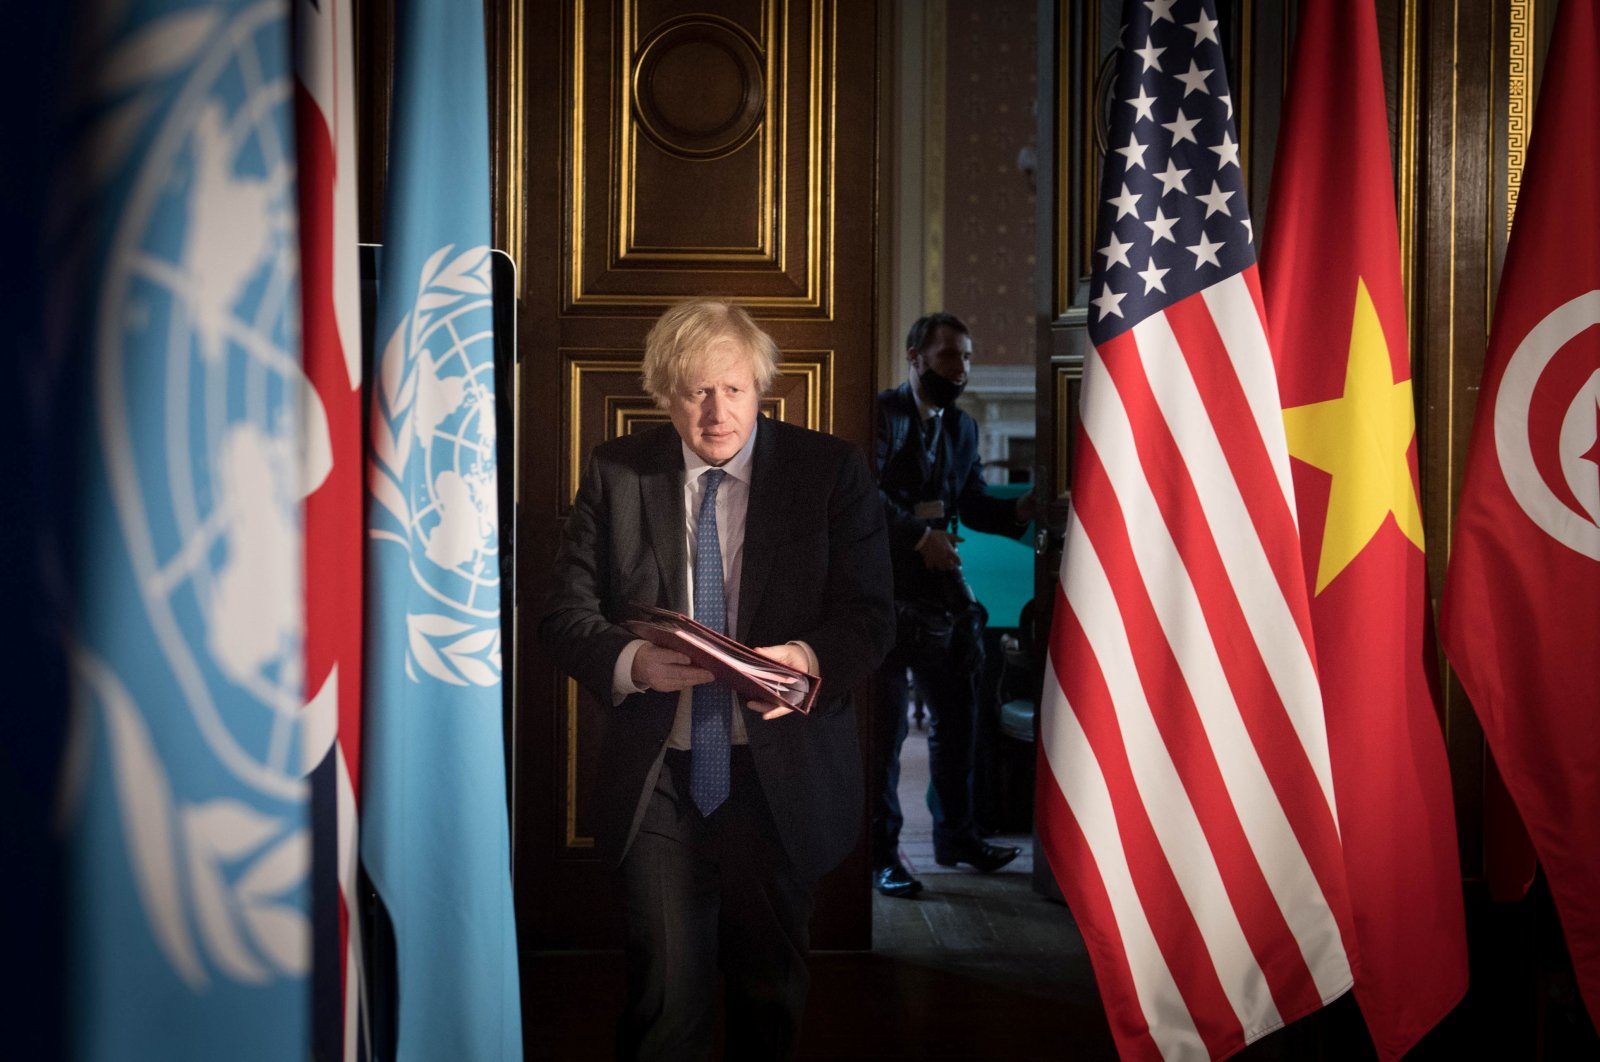 Britain's Prime Minister Boris Johnson chairs a session of the United Nations Security Council on climate and security at the Foreign, Commonwealth and Development Office in London, Britain, Feb. 23, 2021. (Stefan Rousseau/PA Wire/Pool via REUTERS)